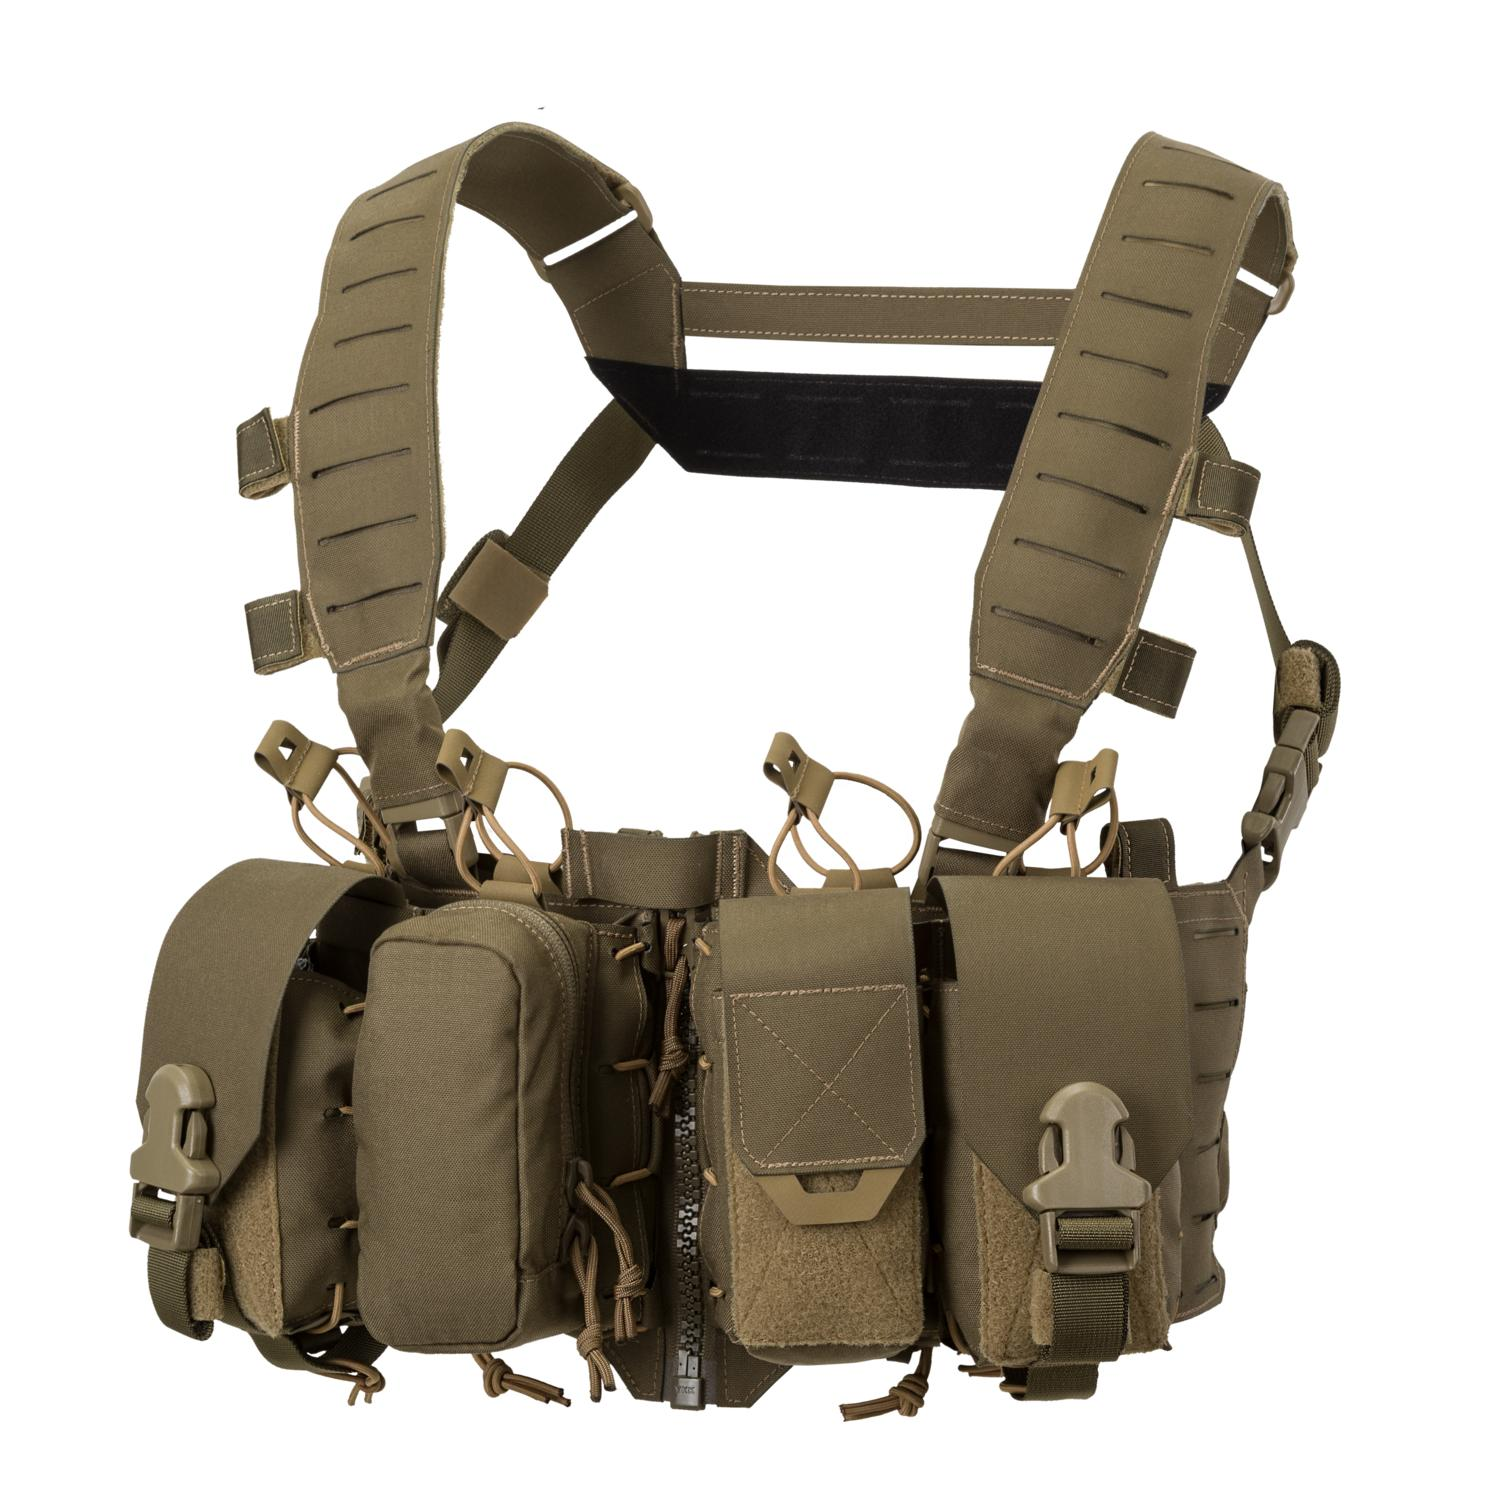 HURRICANE Hybrid Chest Rig